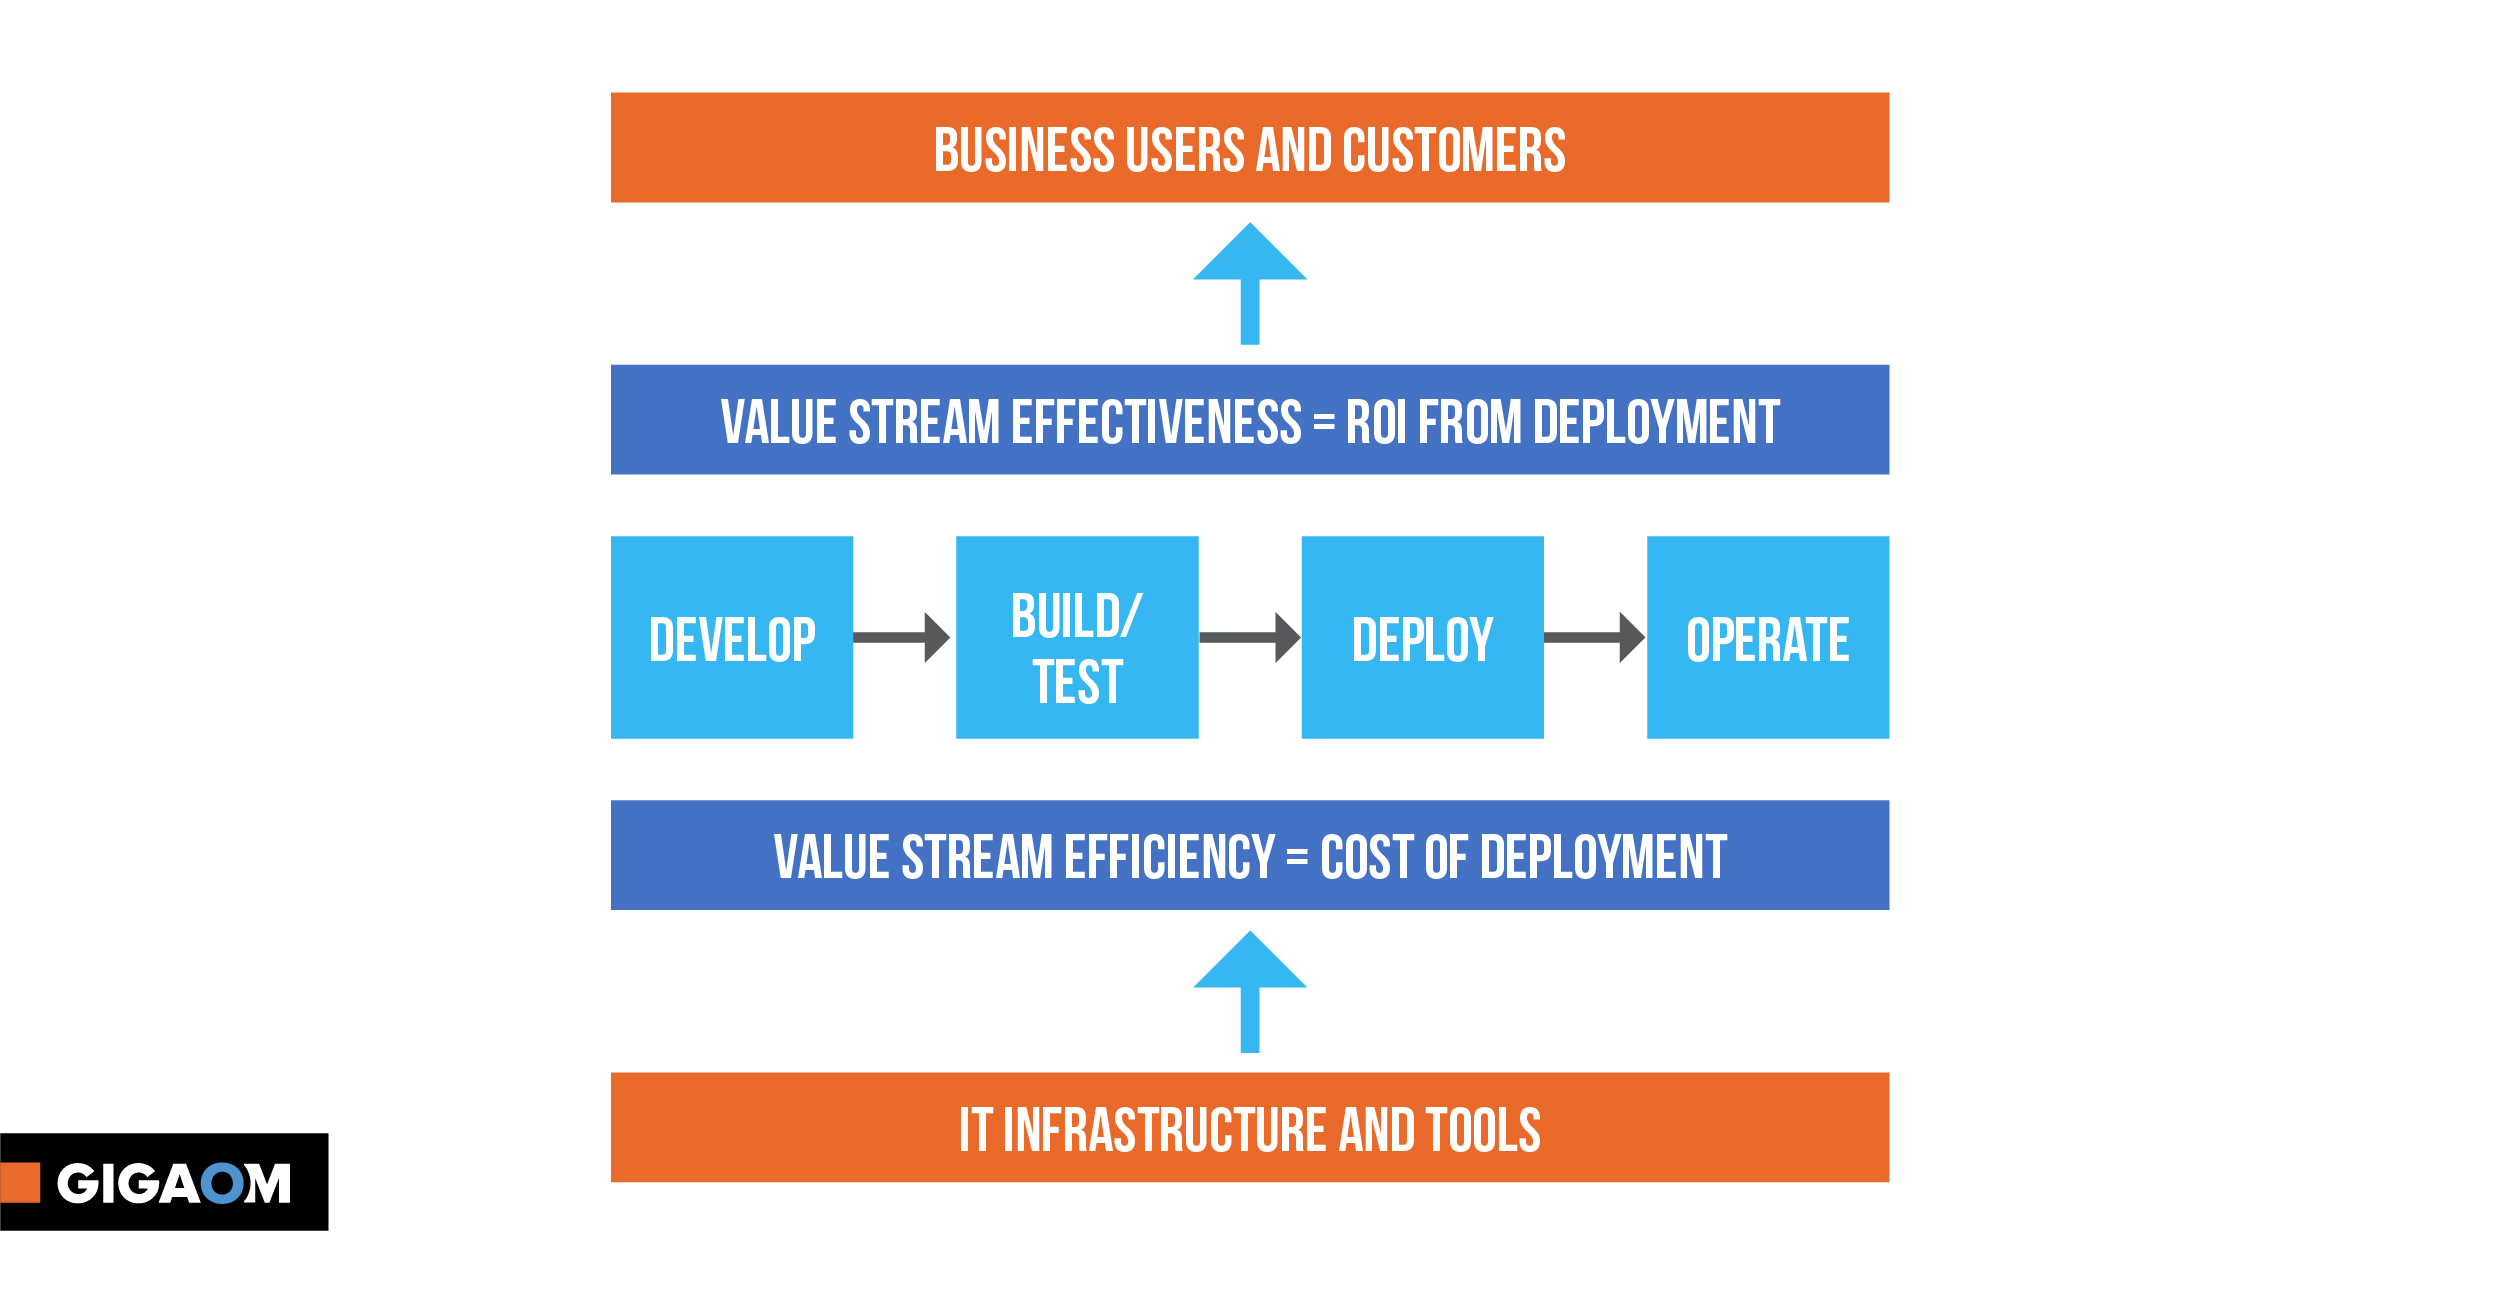 Why should you bother with Value Stream Management? – Gigaom